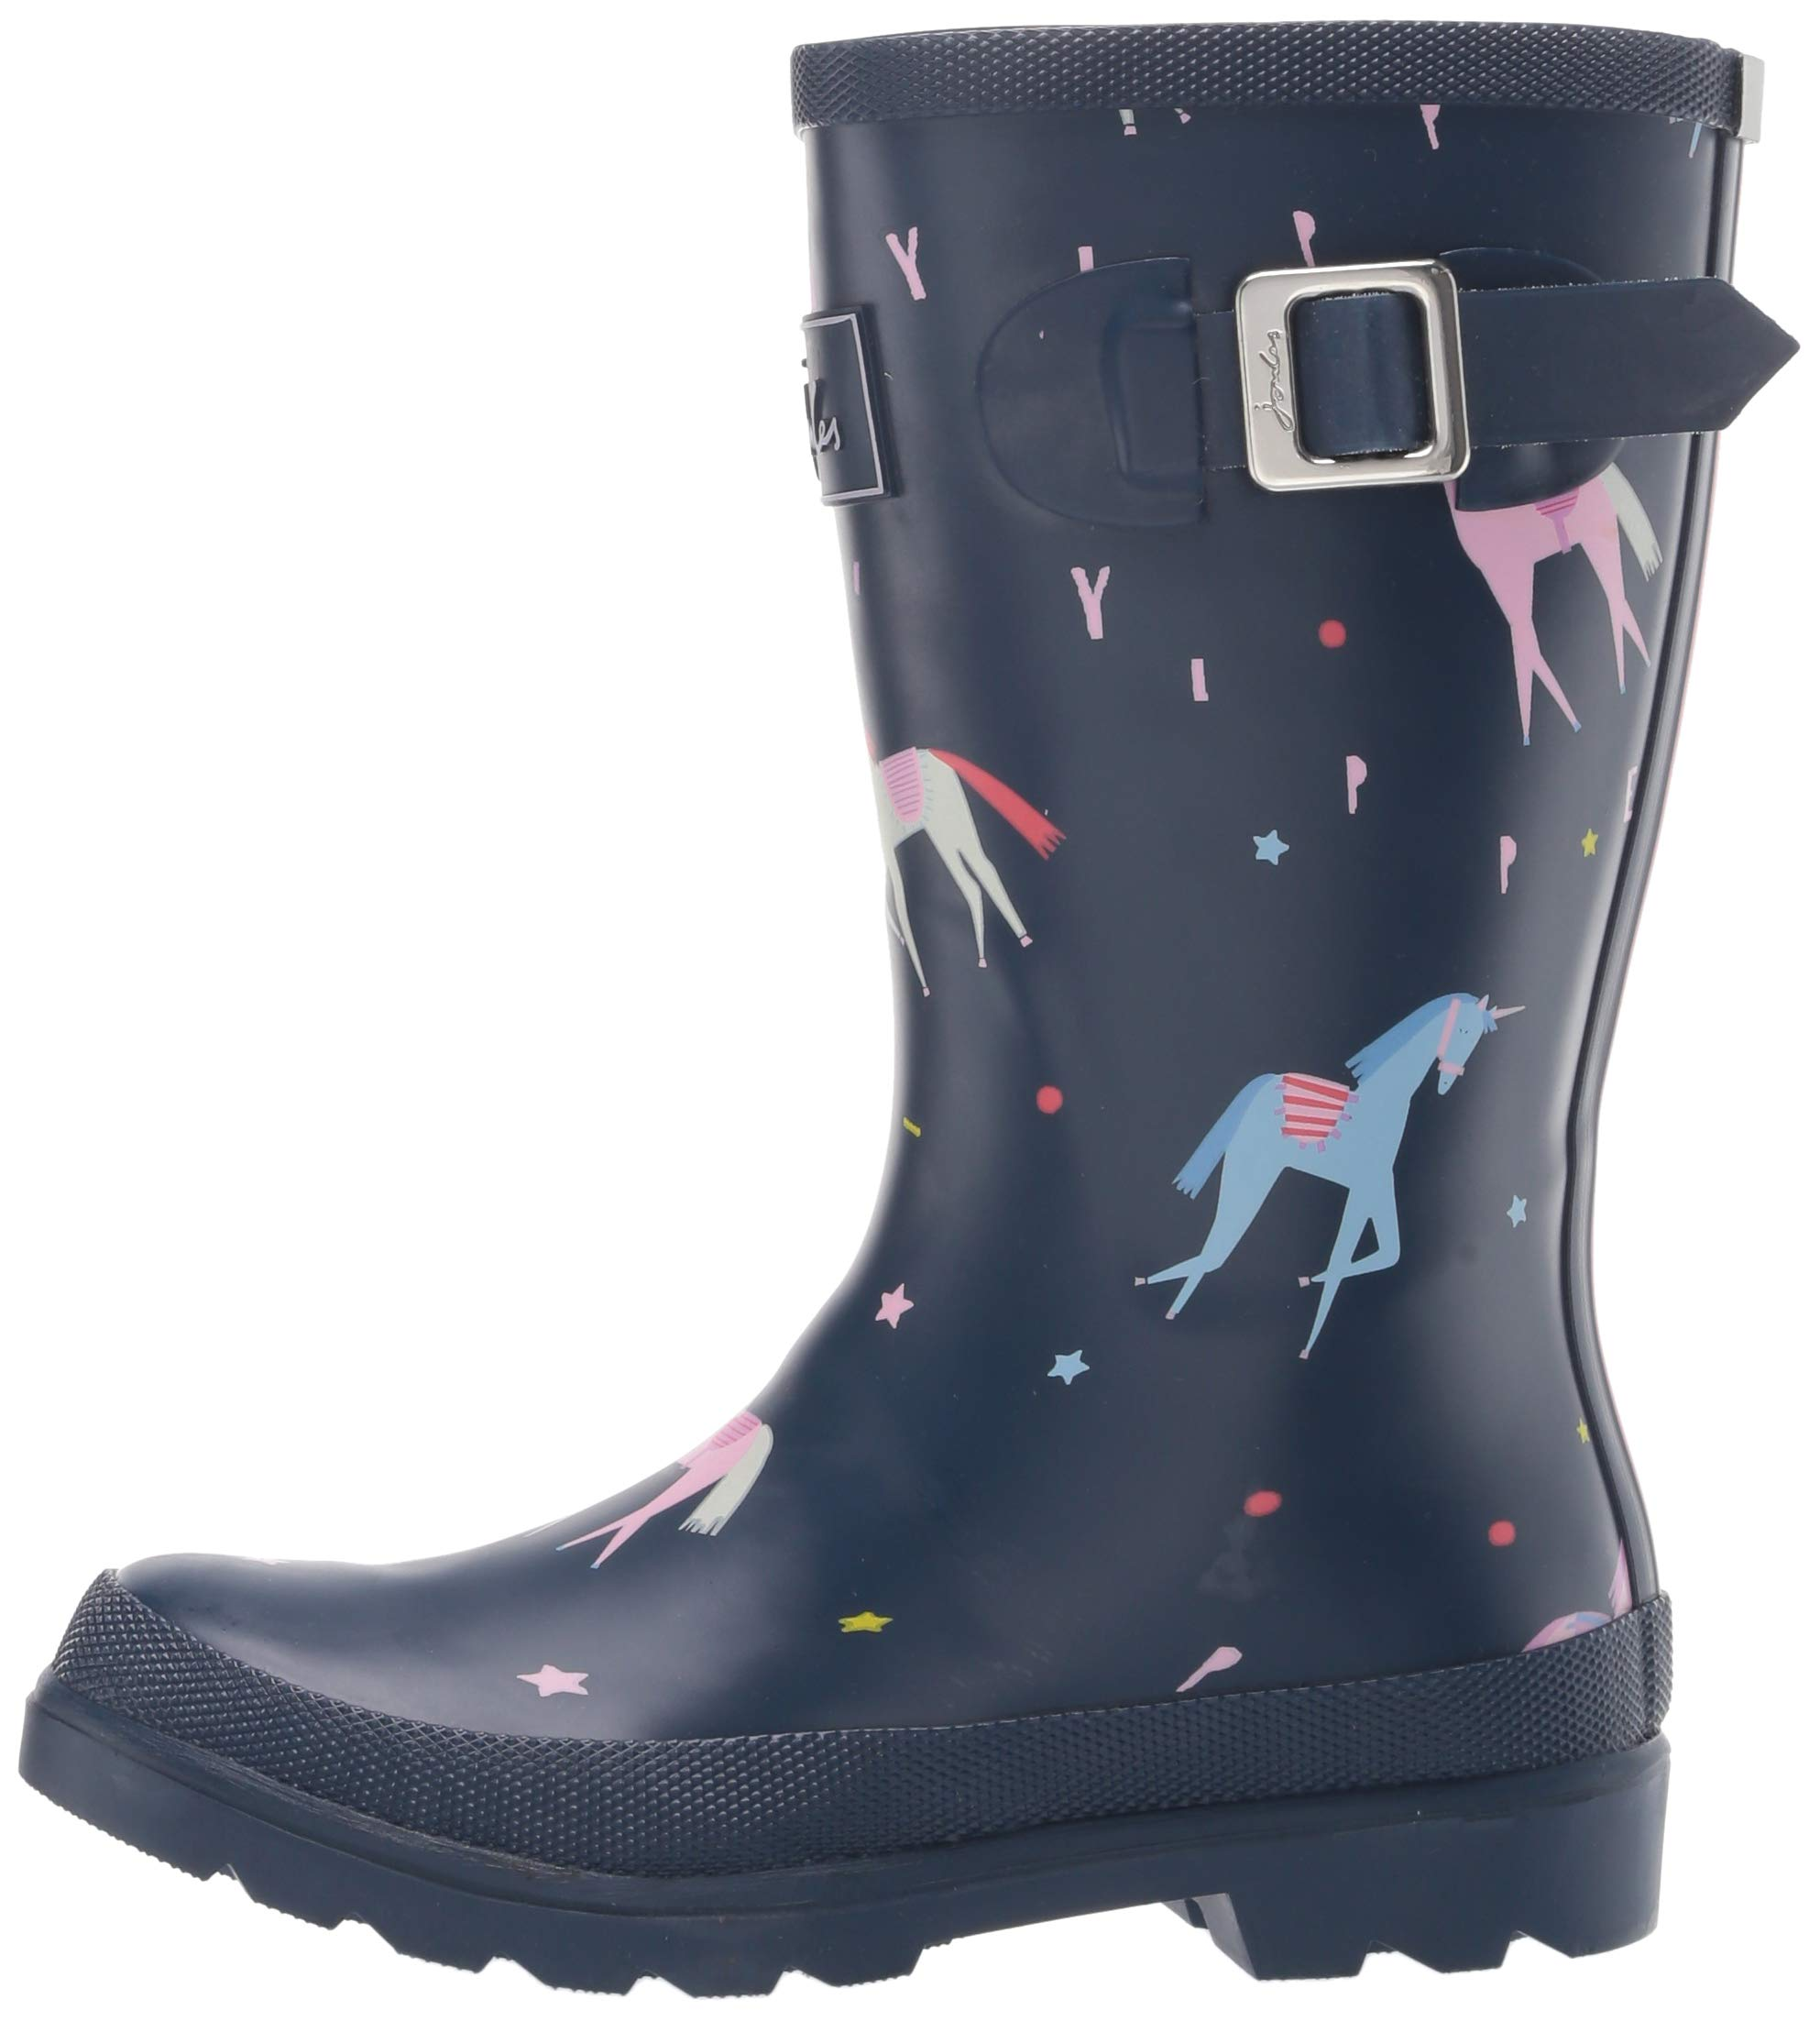 Joules Girls' JNR Welly Print Rain Boot, Blue Unicorn, 3 M US Little Kid by Joules (Image #5)